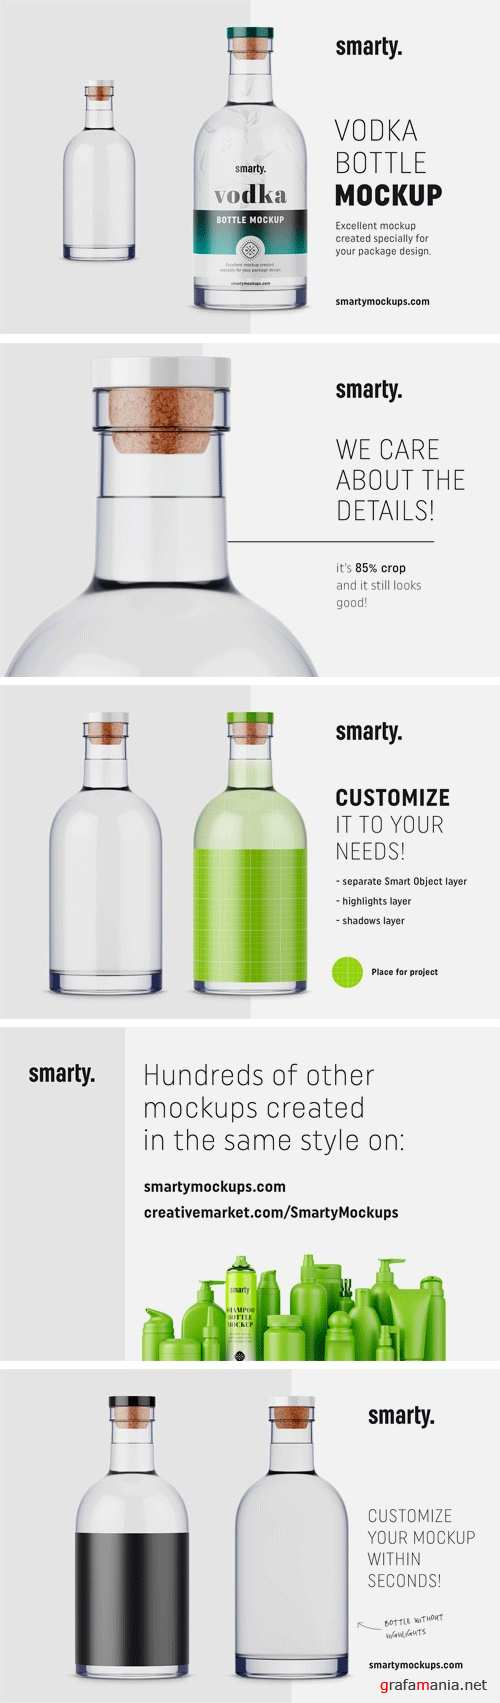 Vodka Bottle Mockup 2447400